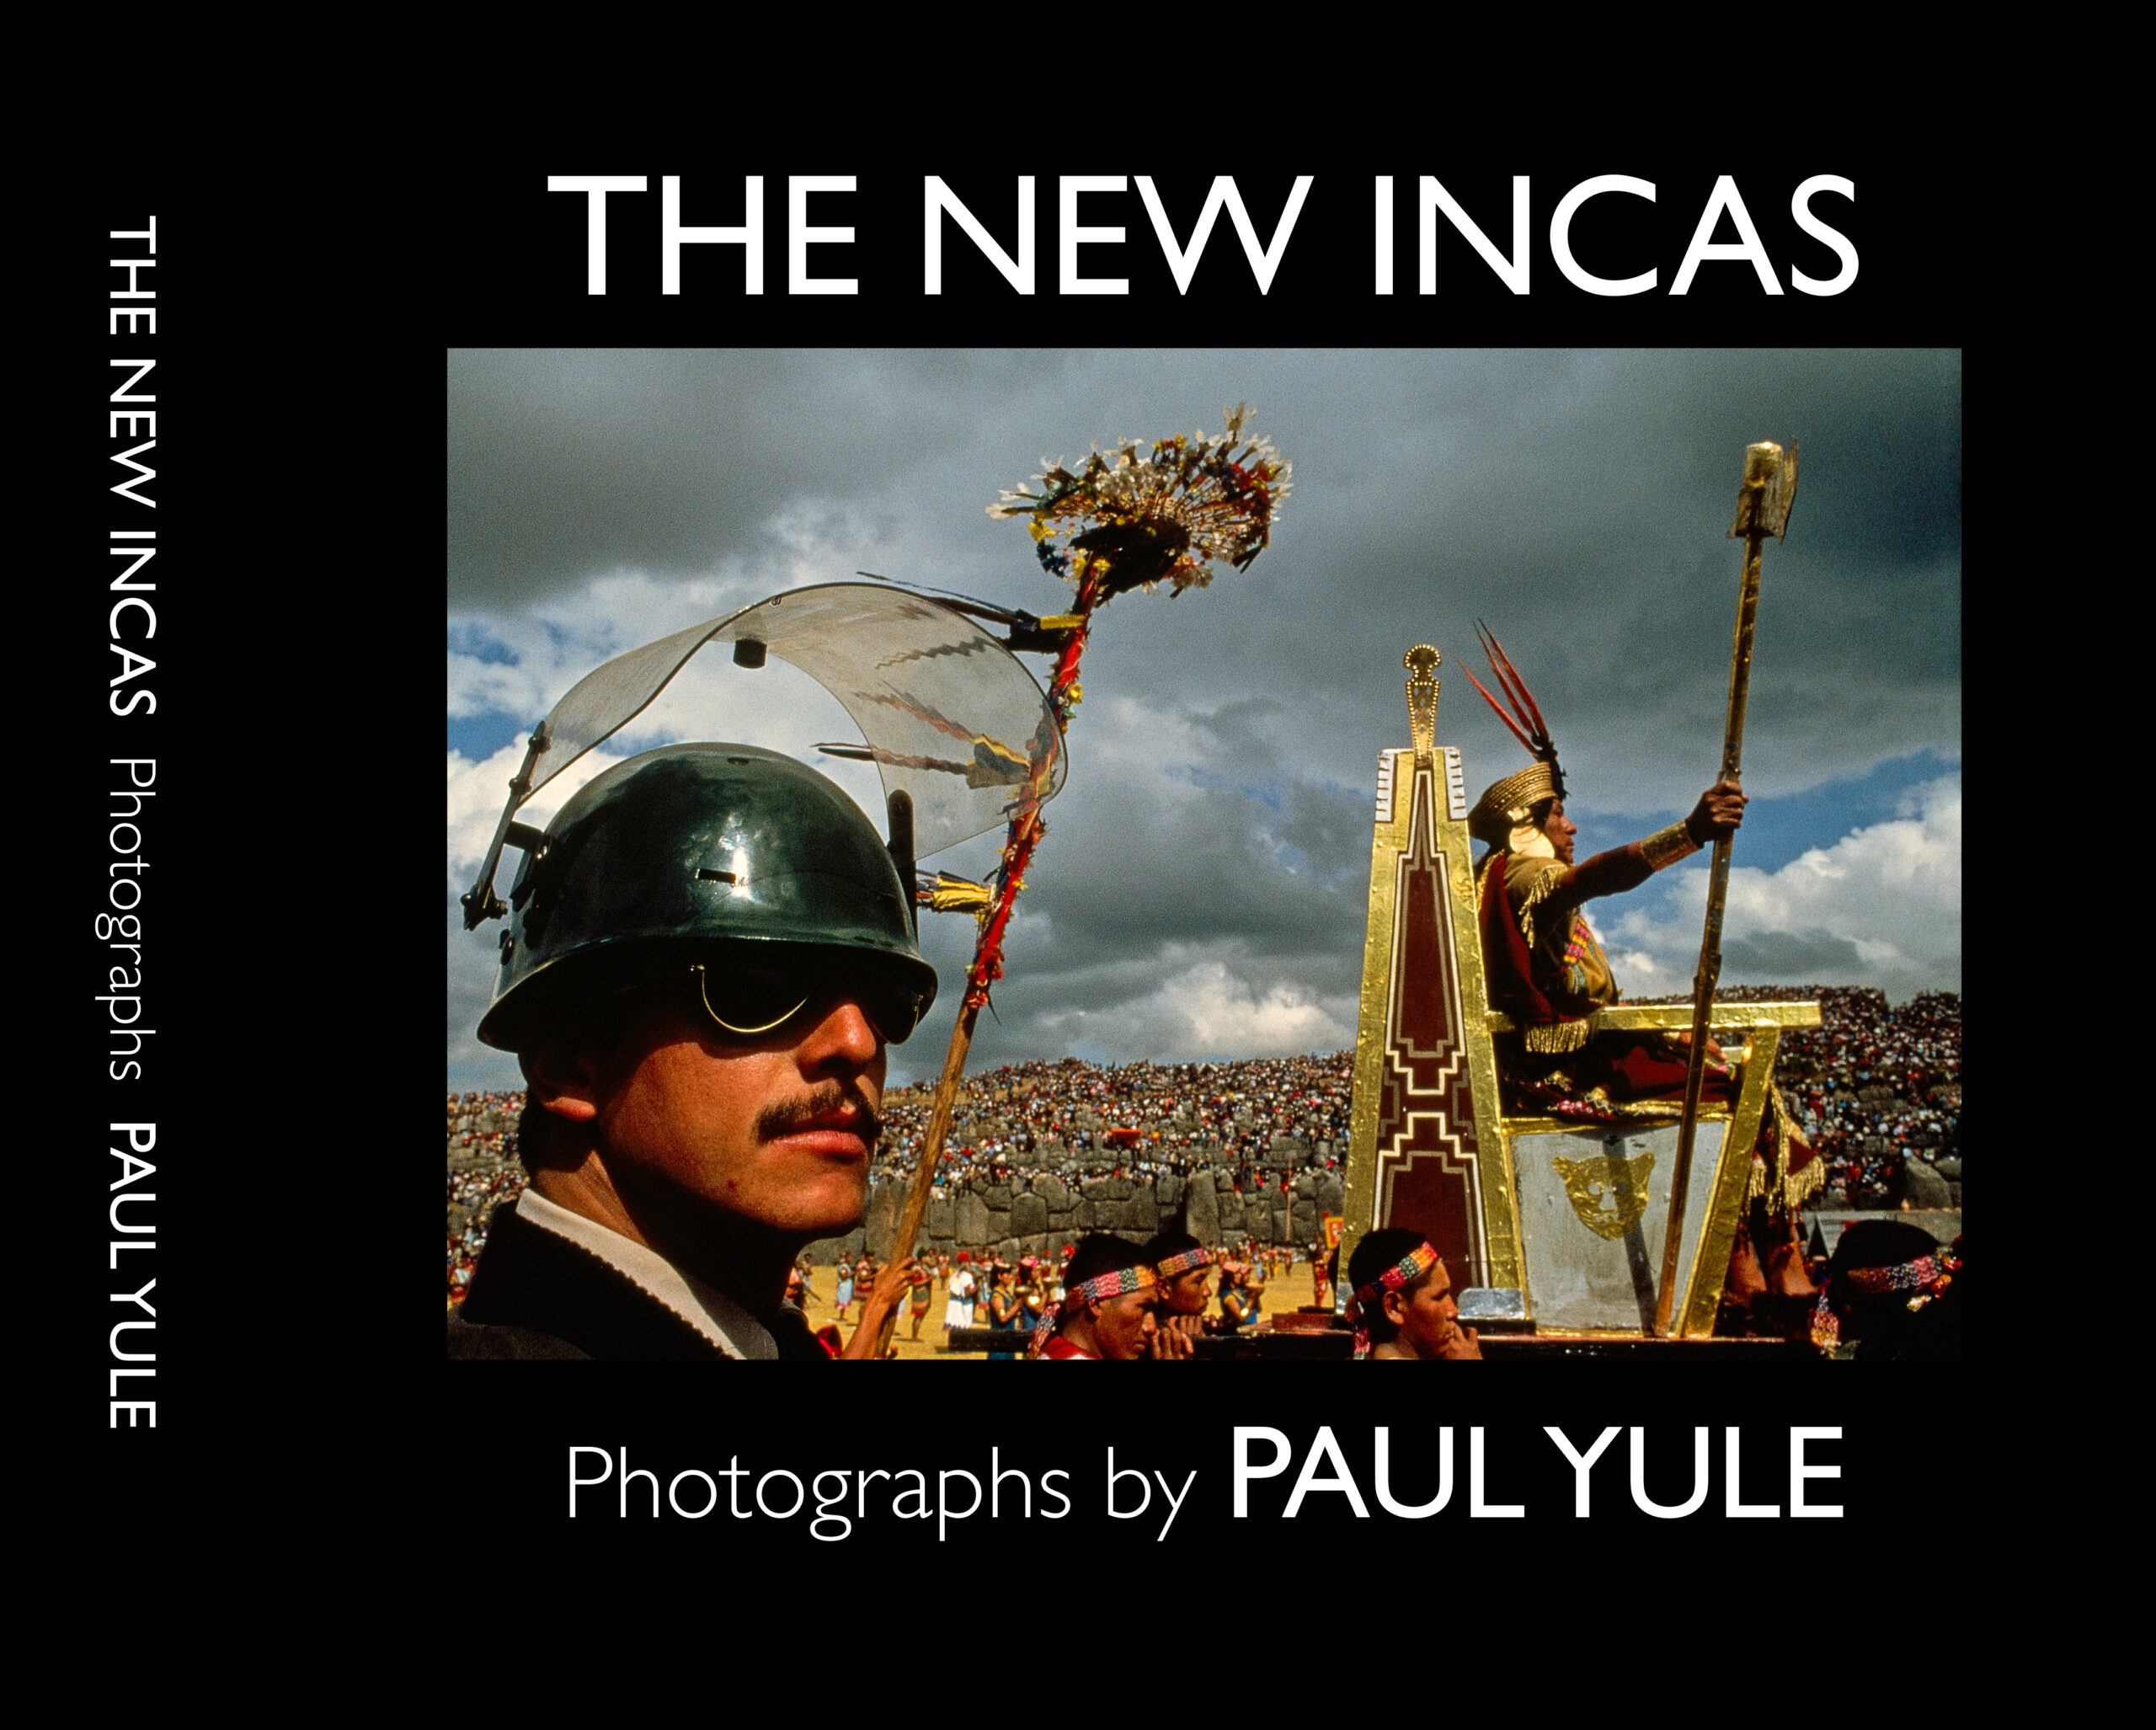 The Soldier and the Incas. Photograph by Paul Yule of Inti Raymi